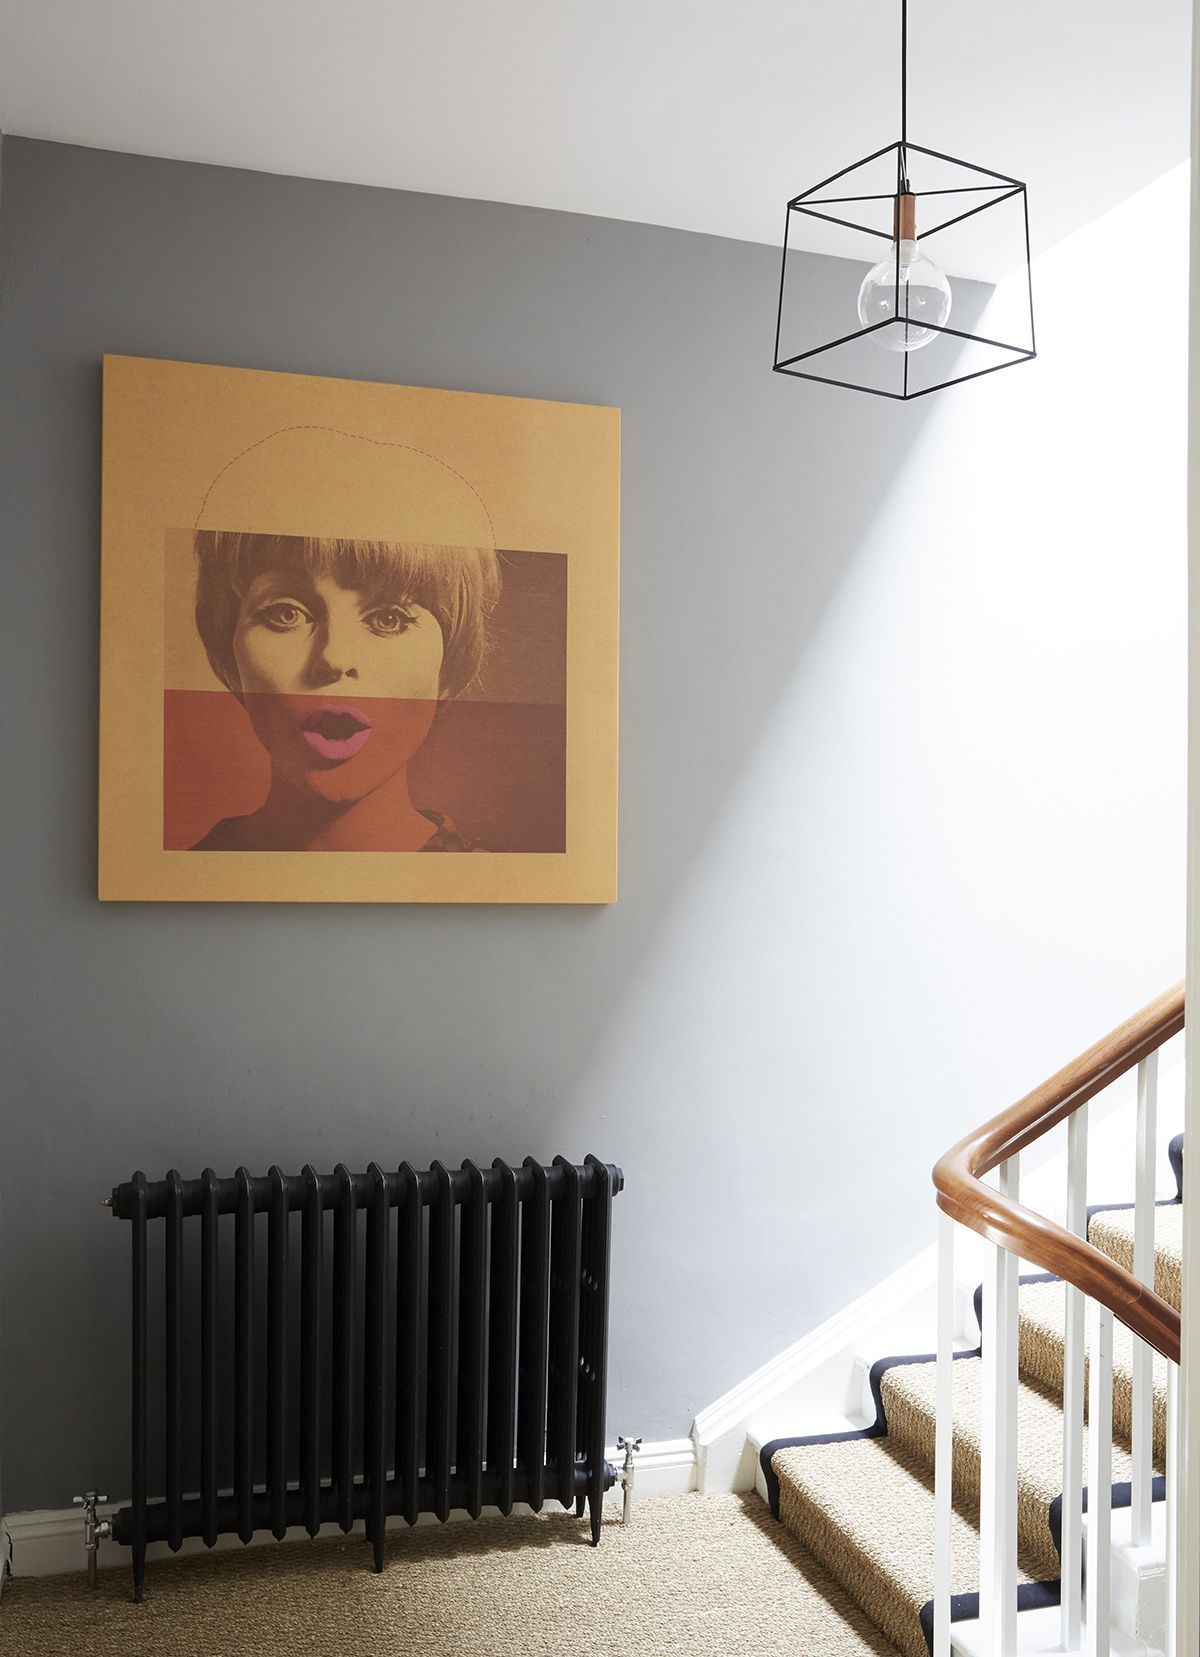 New Elegance: A Chic and Moody Georgian Town House in Newcastle #style #shopping #styles #outfit #pretty #girl #girls #beauty #beautiful #me #cute #stylish #photooftheday #swag #dress #shoes #diy #design #fashion #homedecor